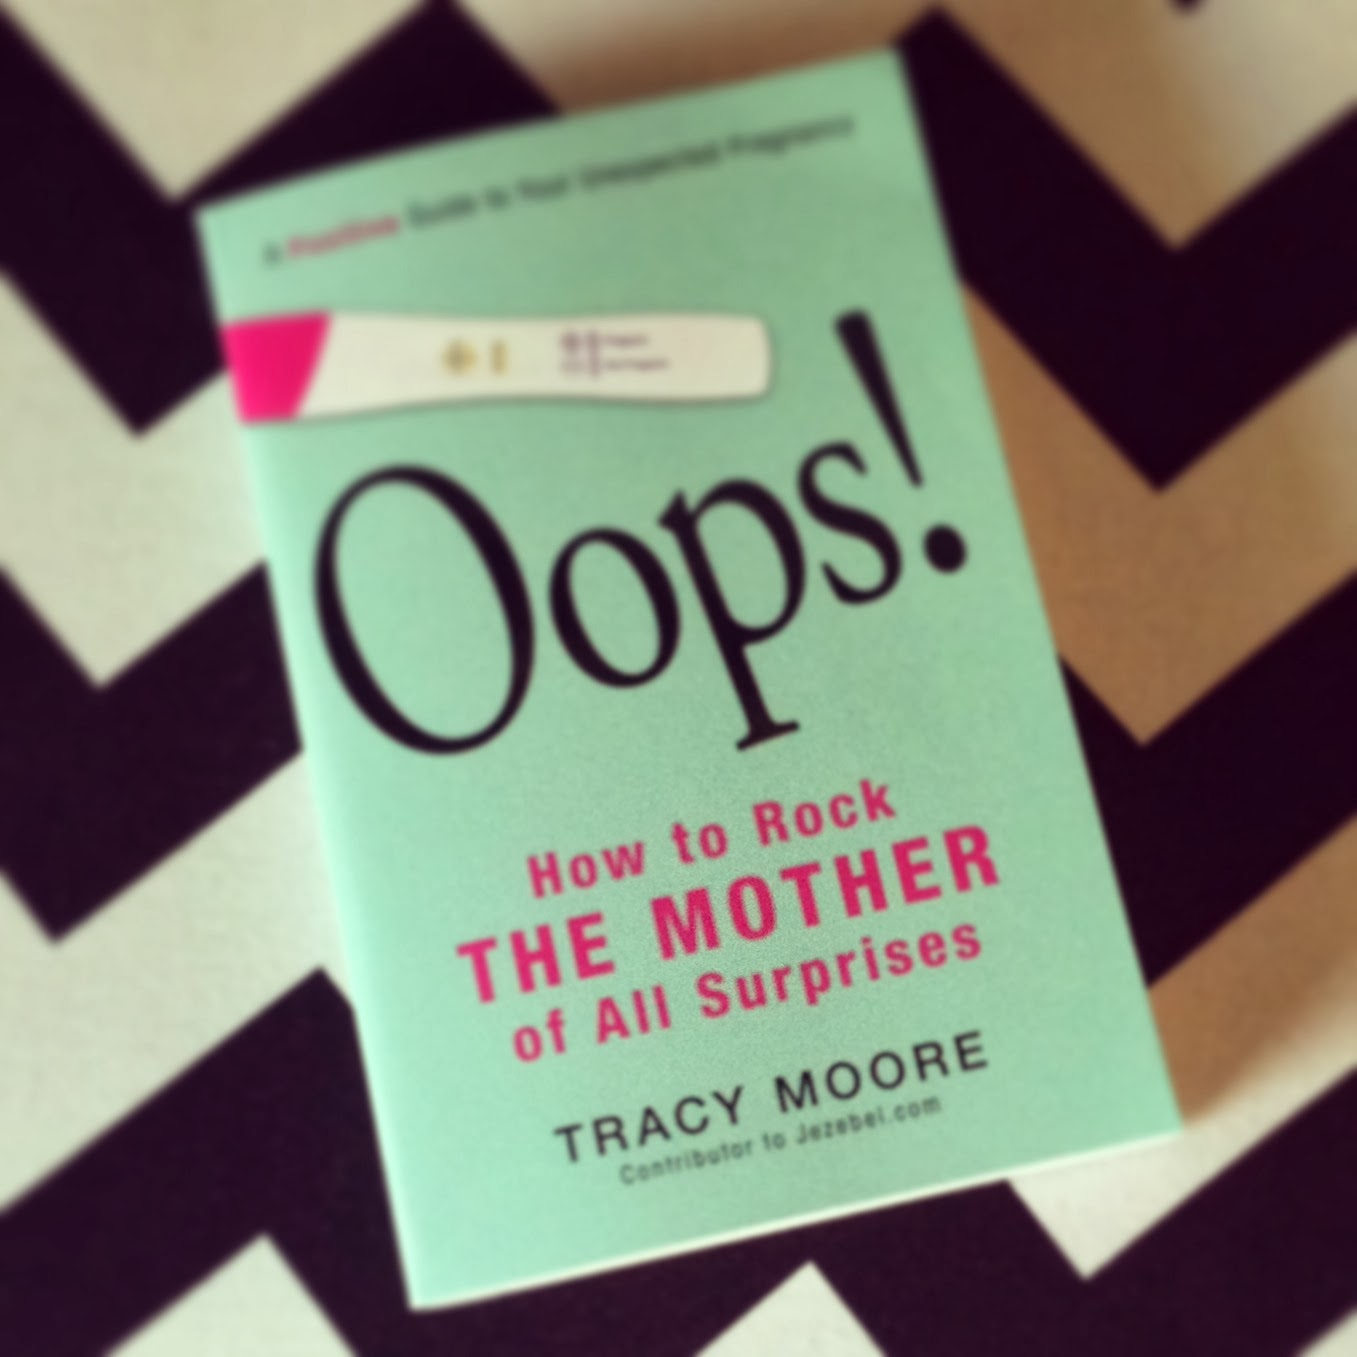 The blonde mule book review oops how to rock the mother of all